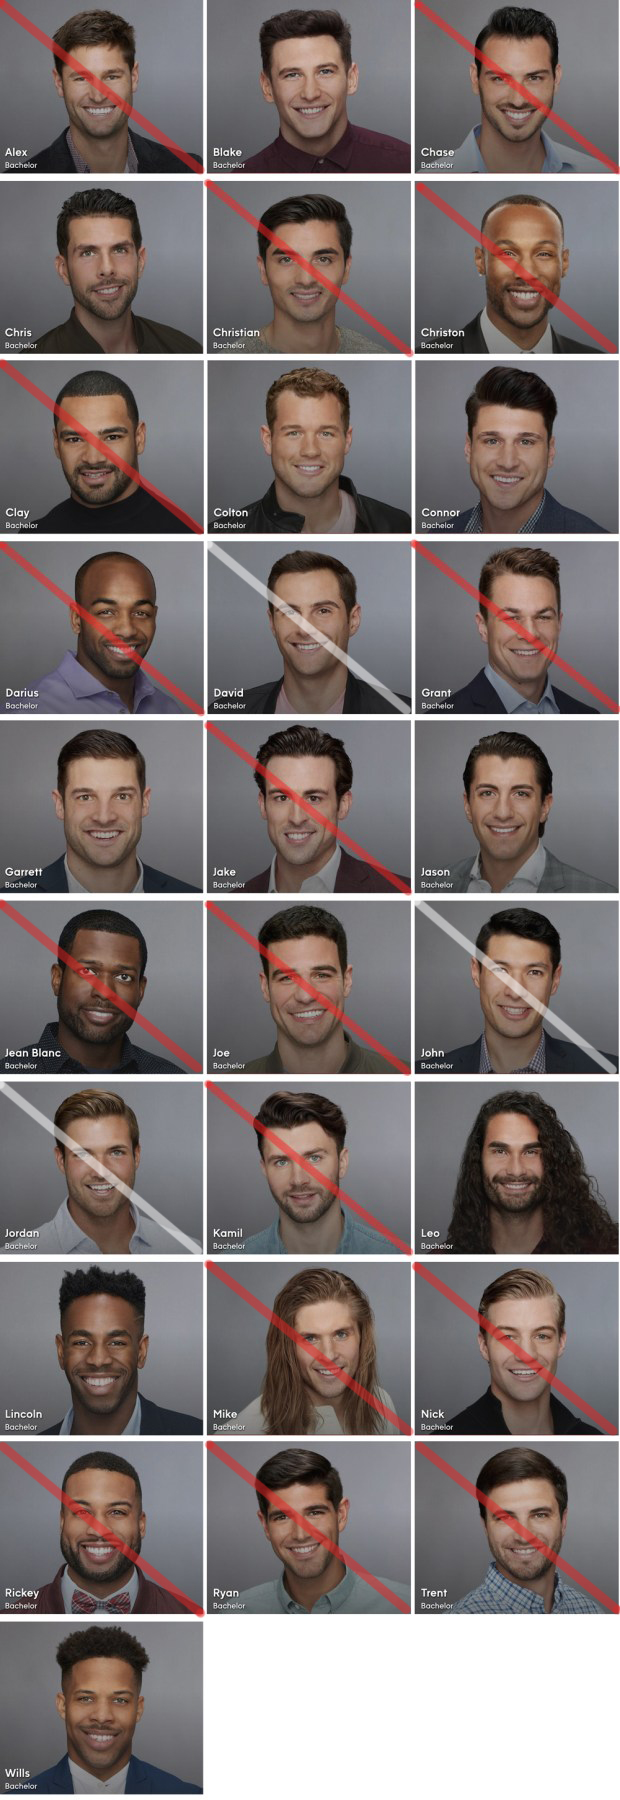 The Week 5 eliminations are marked in white, those from earlier weeks in red.